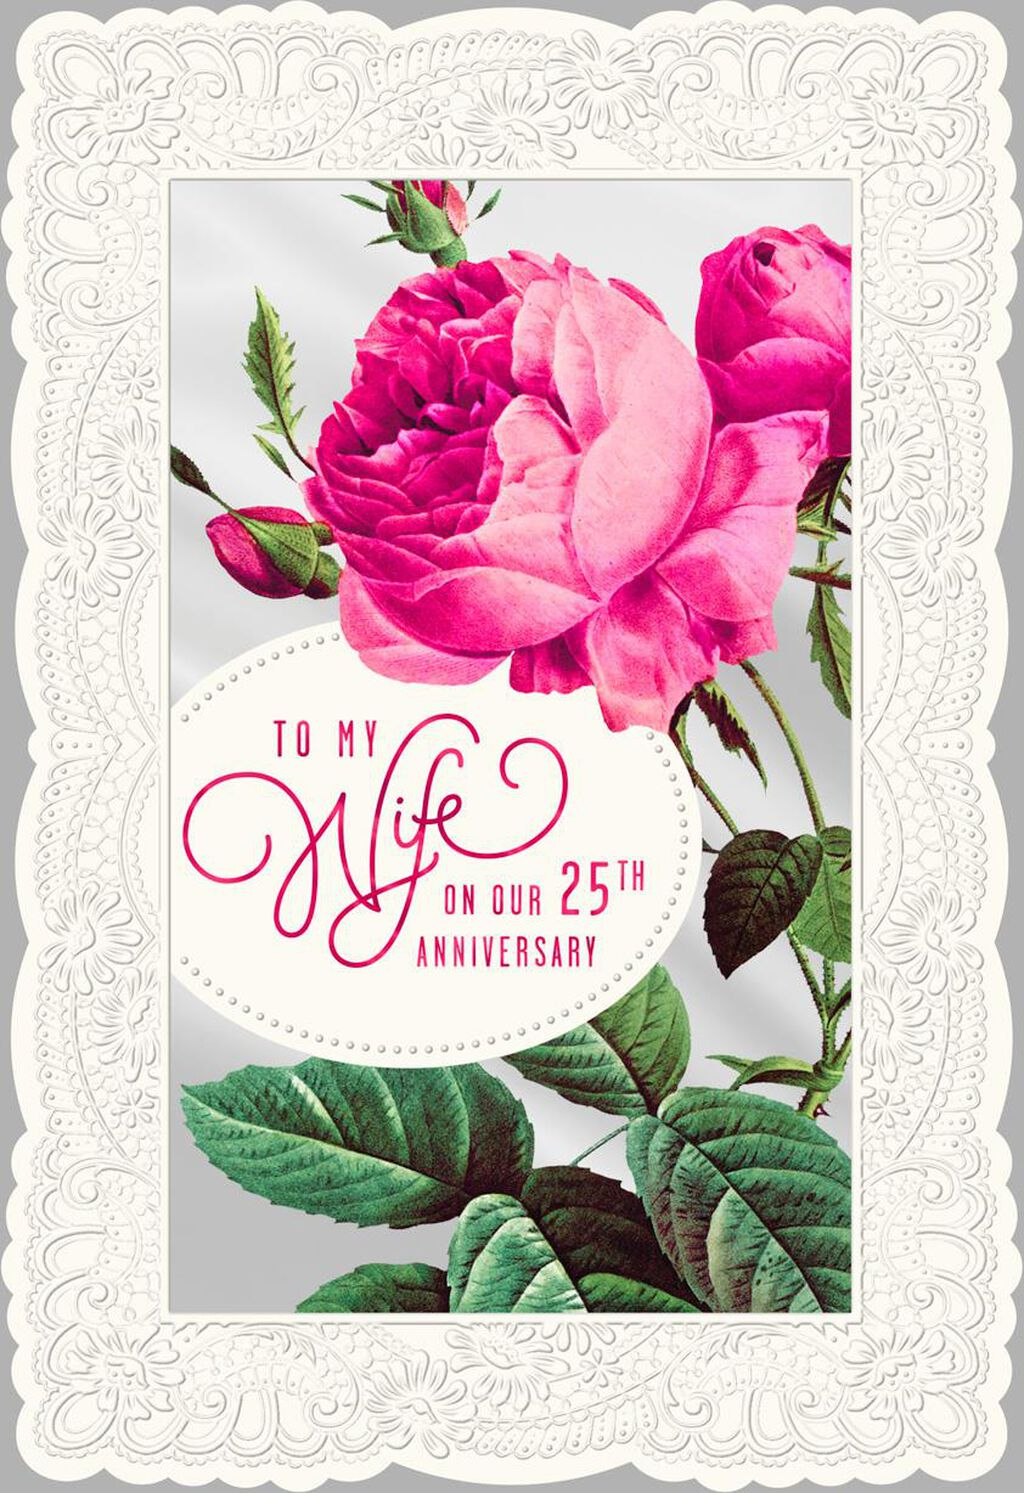 Pink Peony Flower 25th Anniversary Card For Wife Greeting Cards